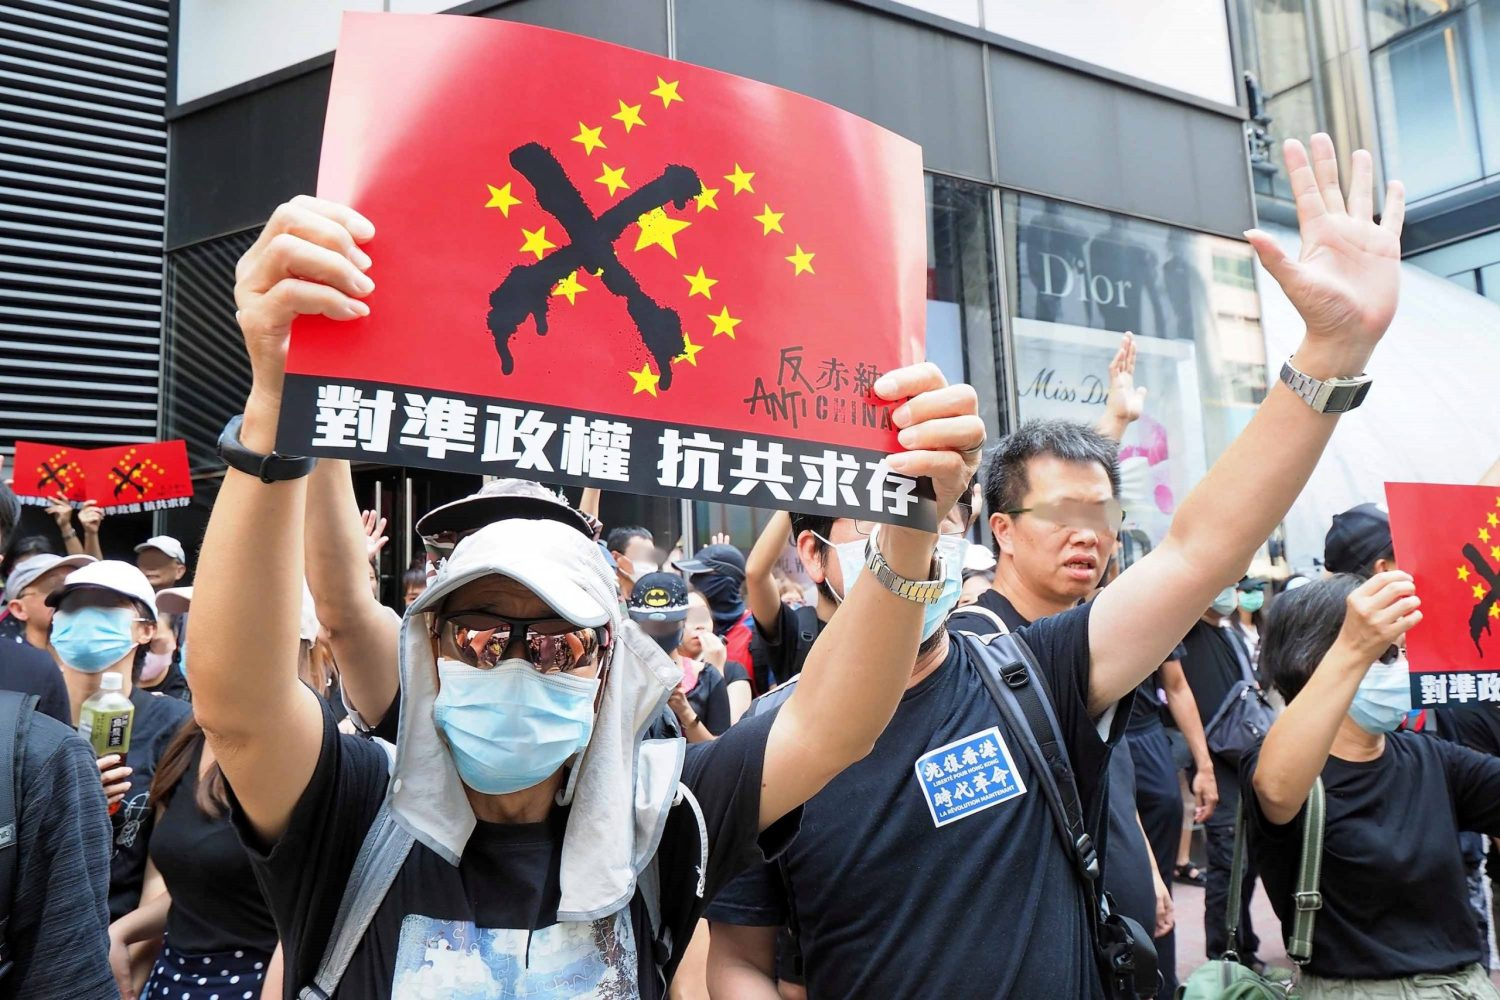 Communism has been replaced by fascism. Student protestors, Hong Kong.